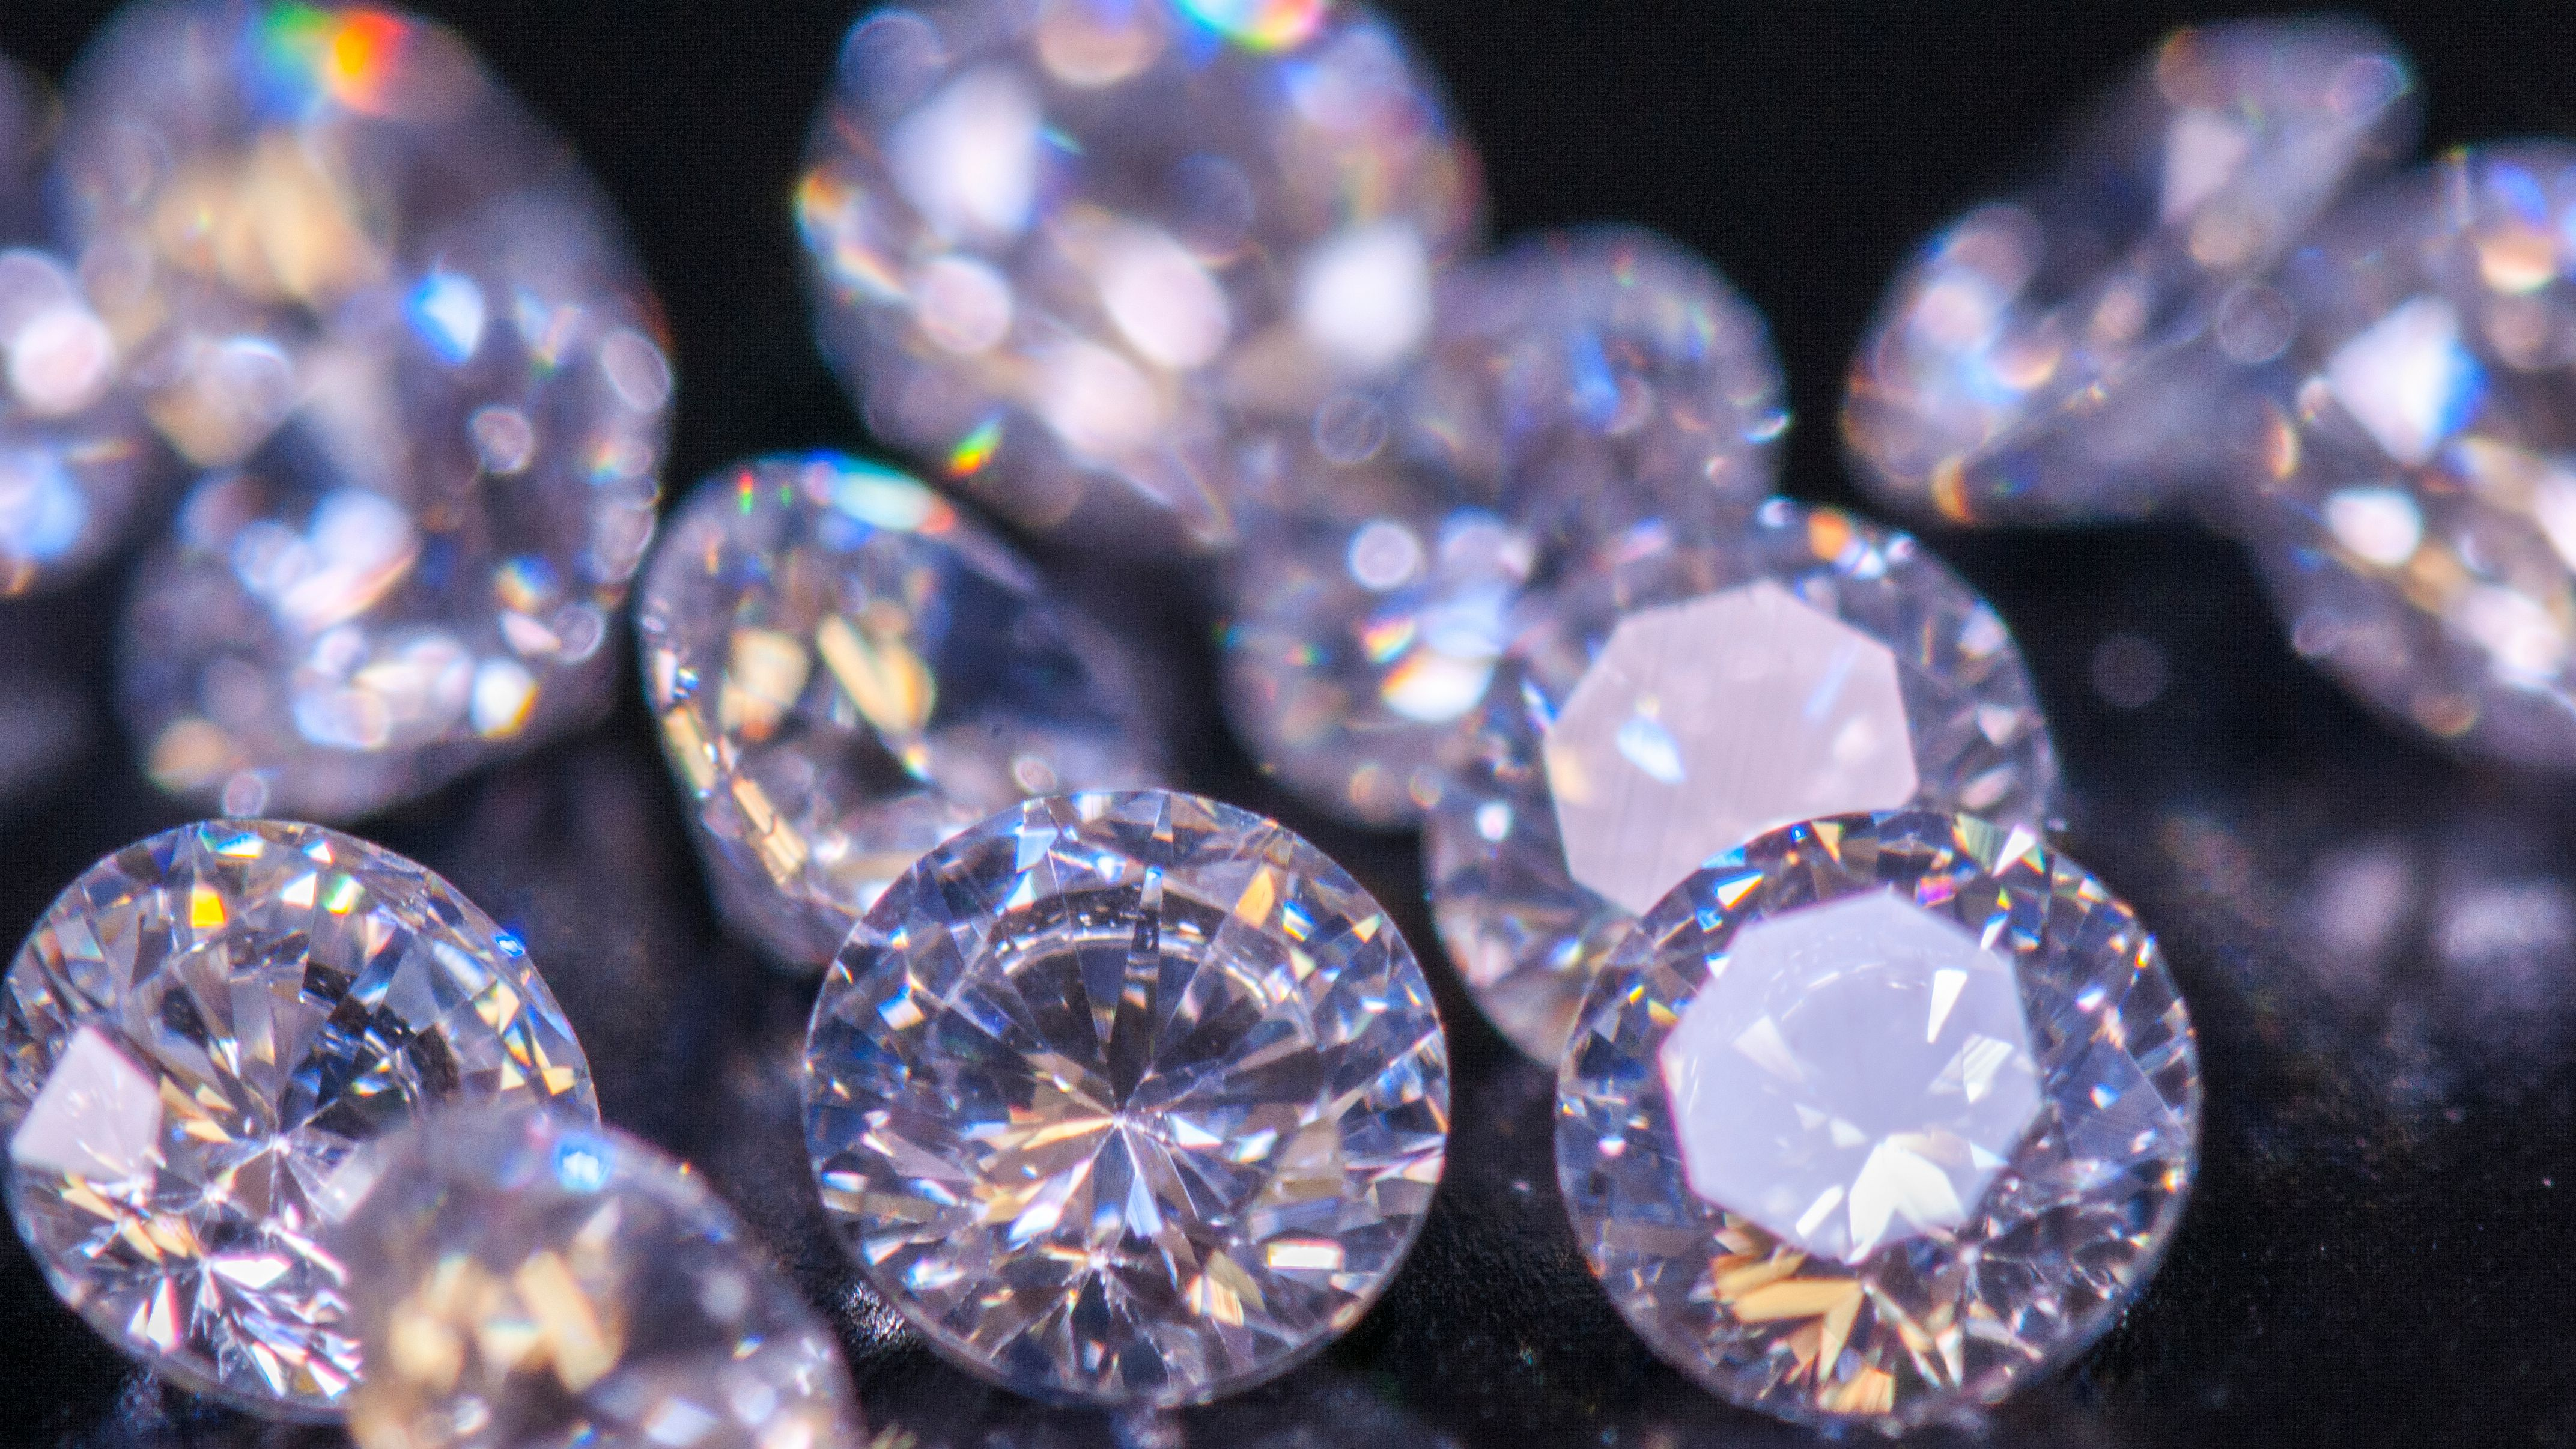 Types of Diamond Inclusions